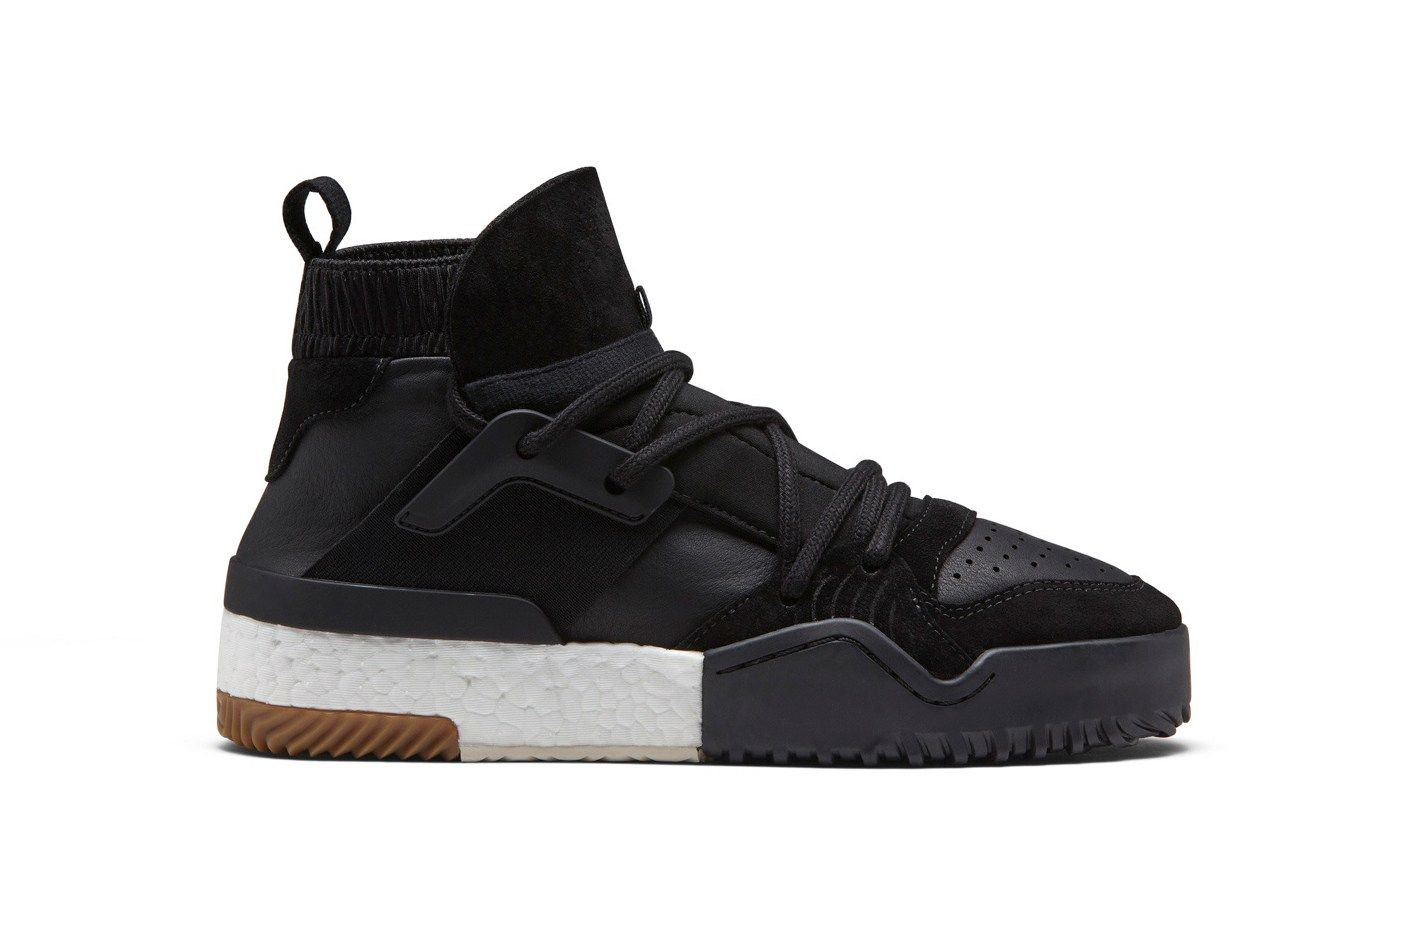 Alexander Wang s adidas Originals AW Ball to Release in Two Colorways - EU  Kicks  Sneaker Magazine 87331a51ace1a